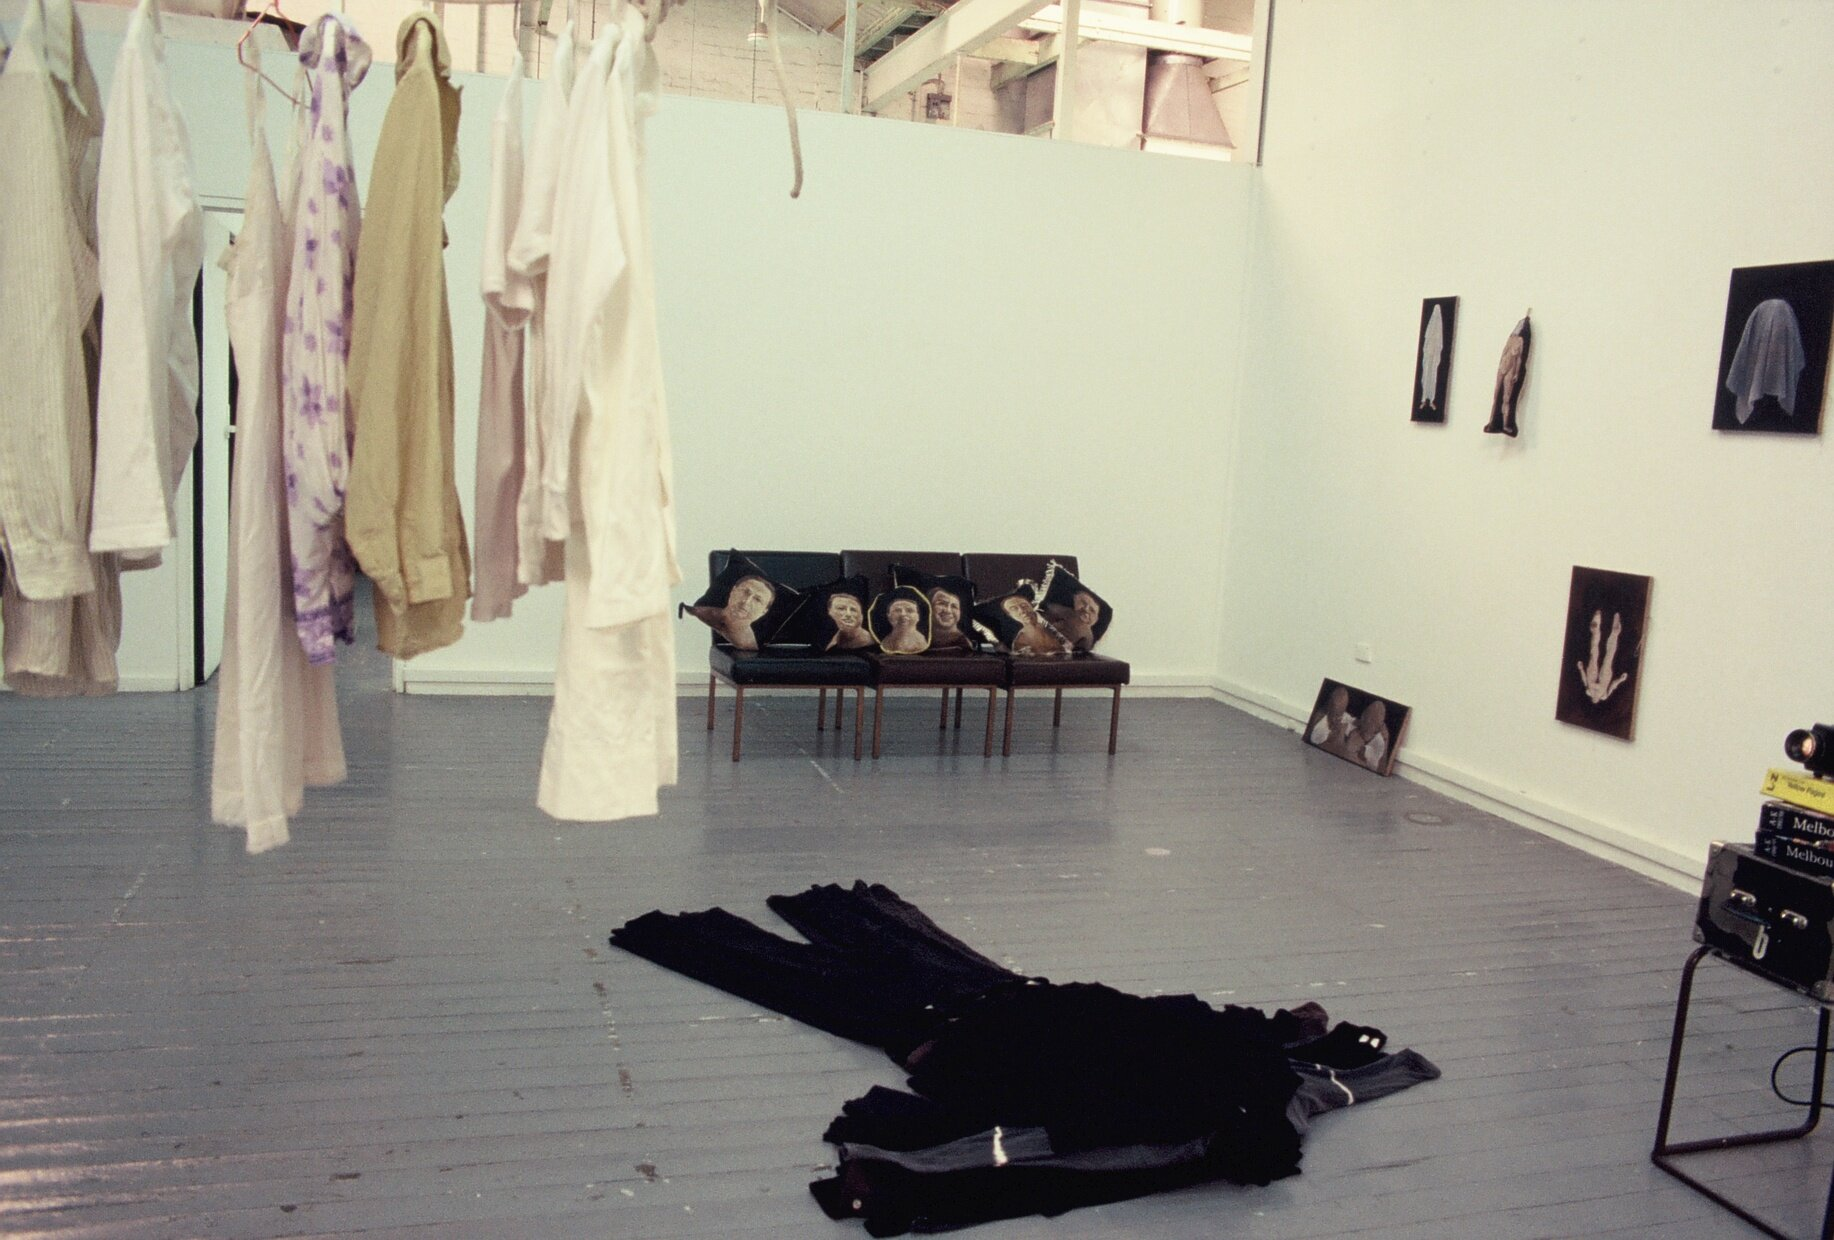 Masters show at RMIT - personal narratives in art